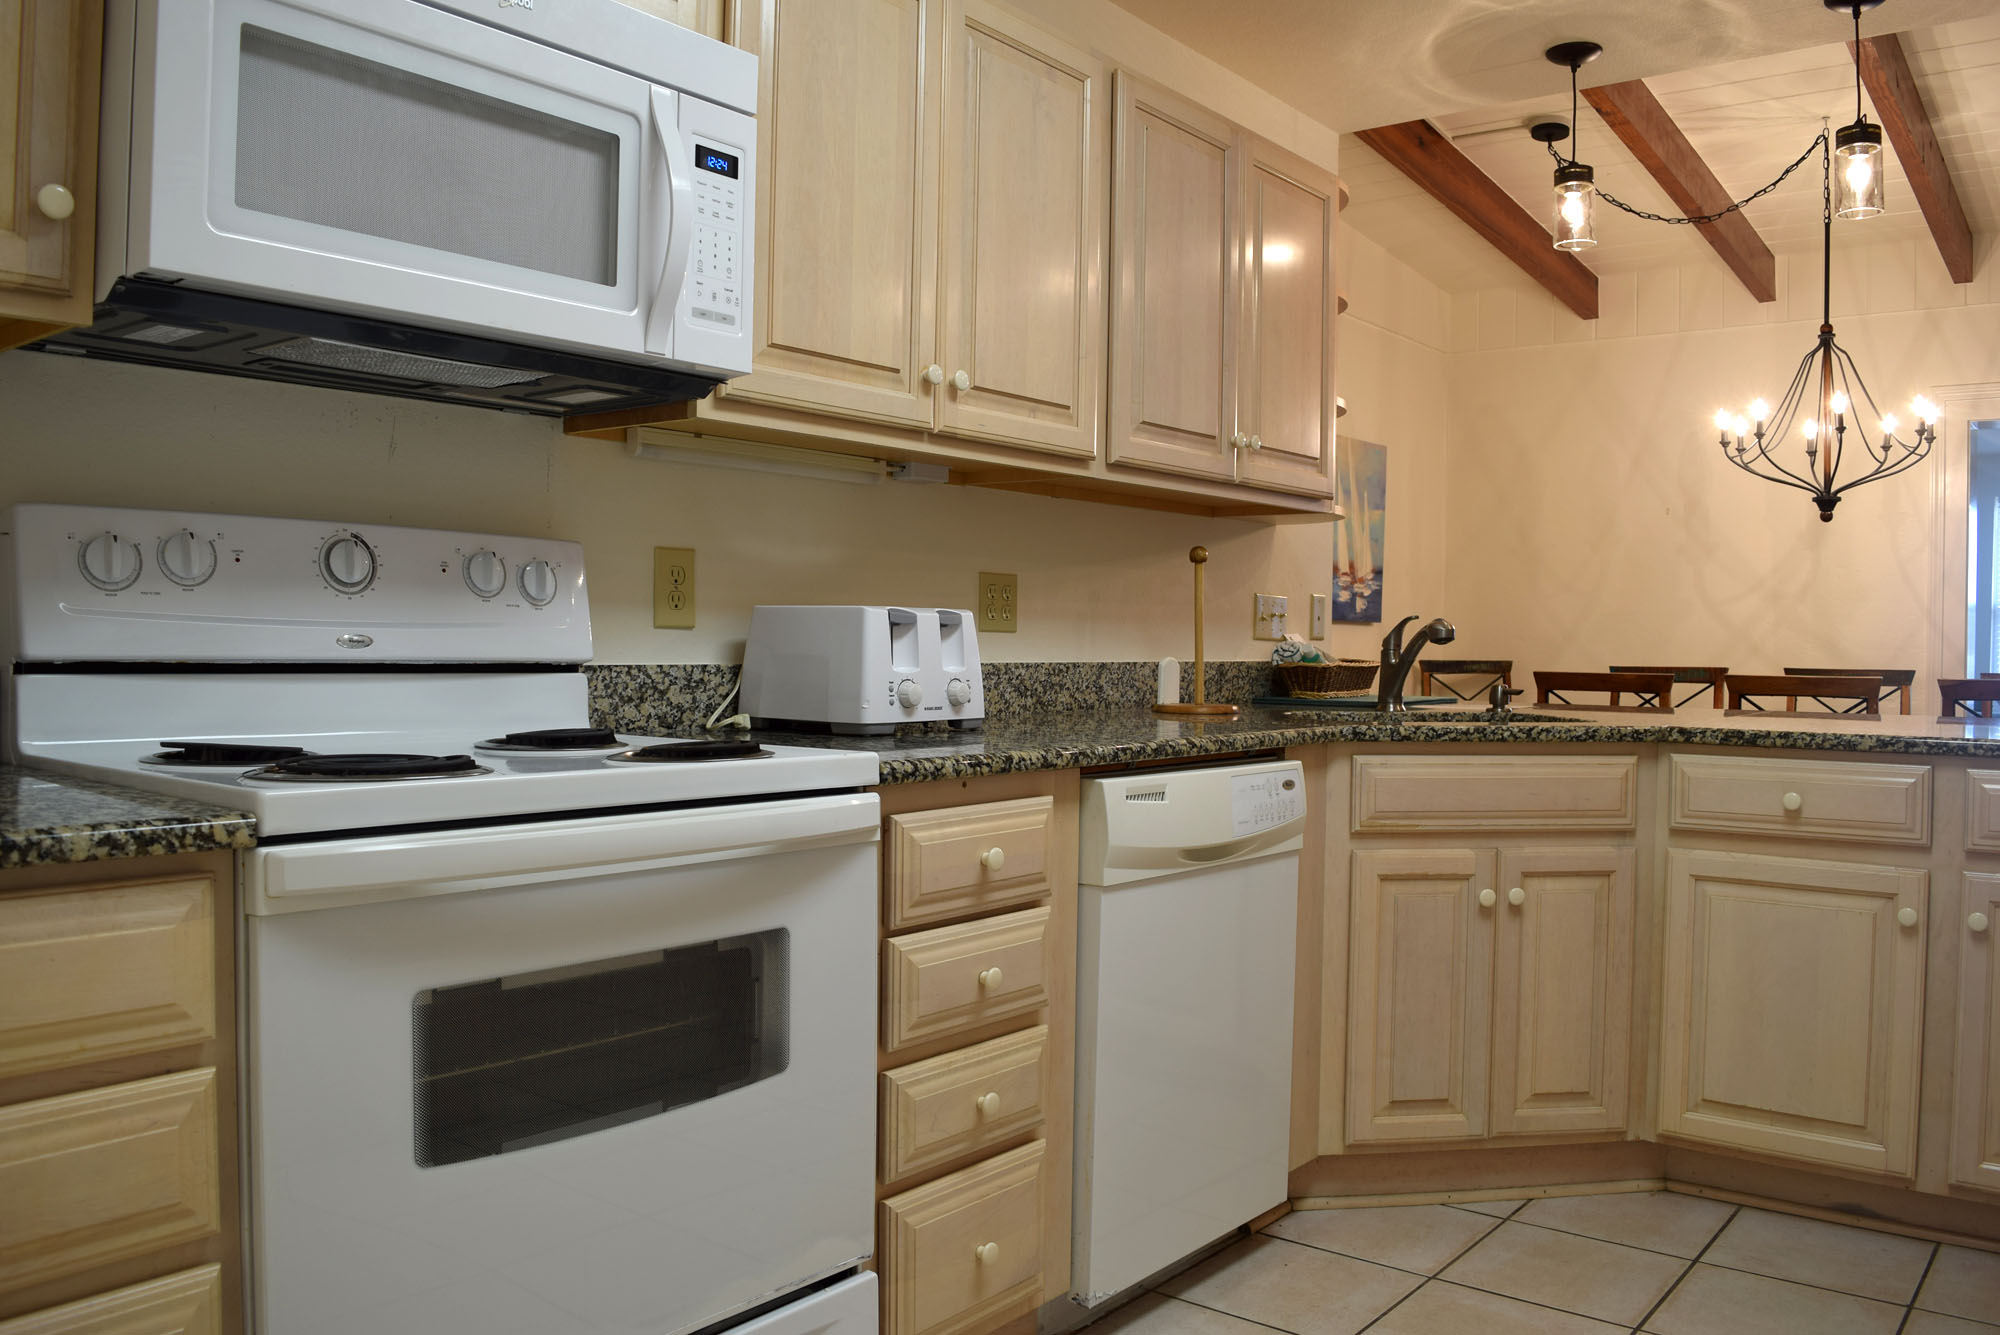 Avenida 14 - 402 House / Cottage rental in Pensacola Beach House Rentals in Pensacola Beach Florida - #8